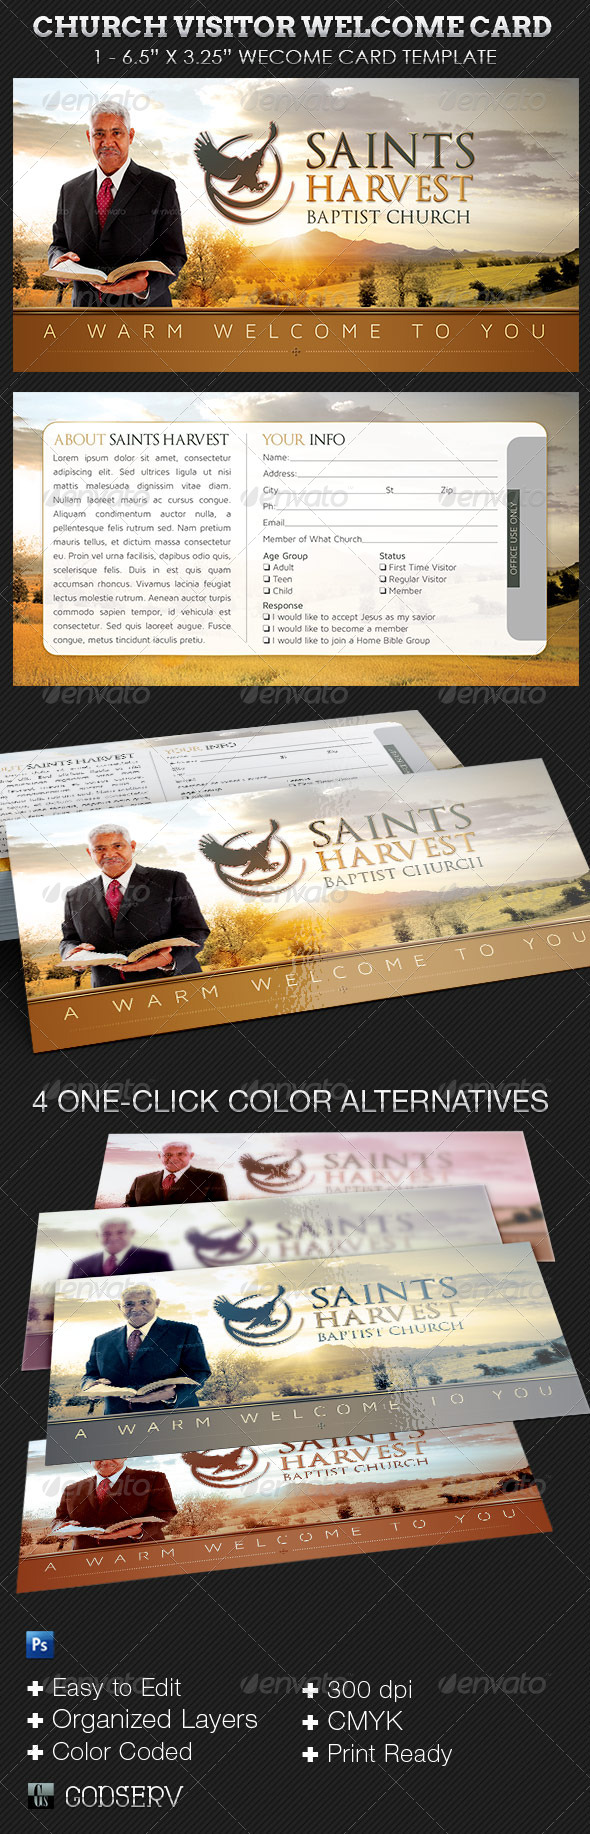 GraphicRiver Church Visitor Welcome Card Template 6660248